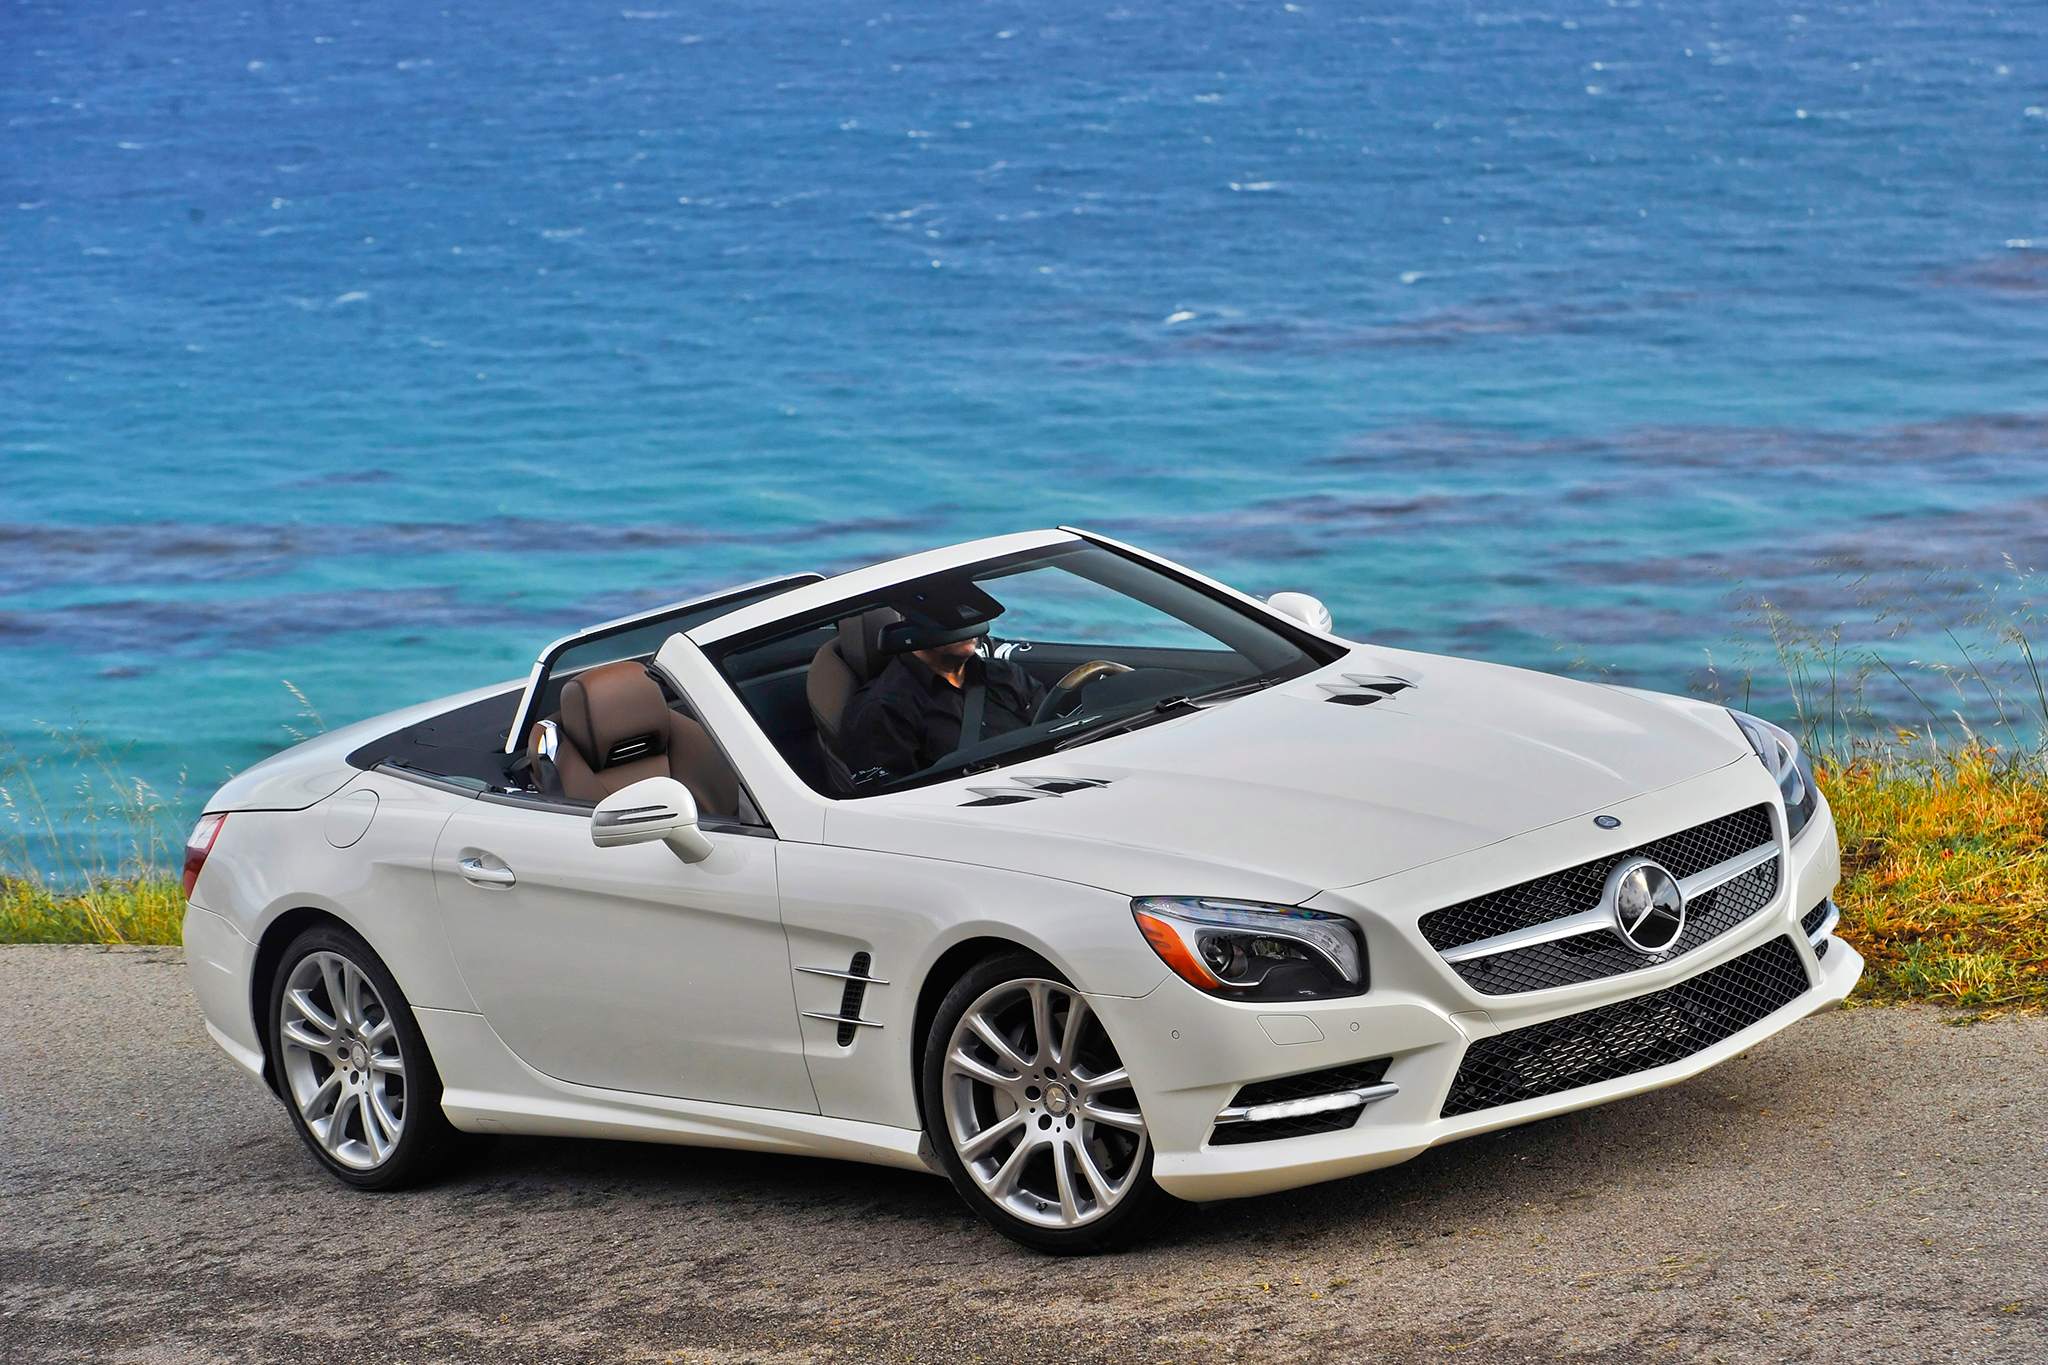 Mercedes-Benz SL, SLK May Share Architecture, Offer AWD